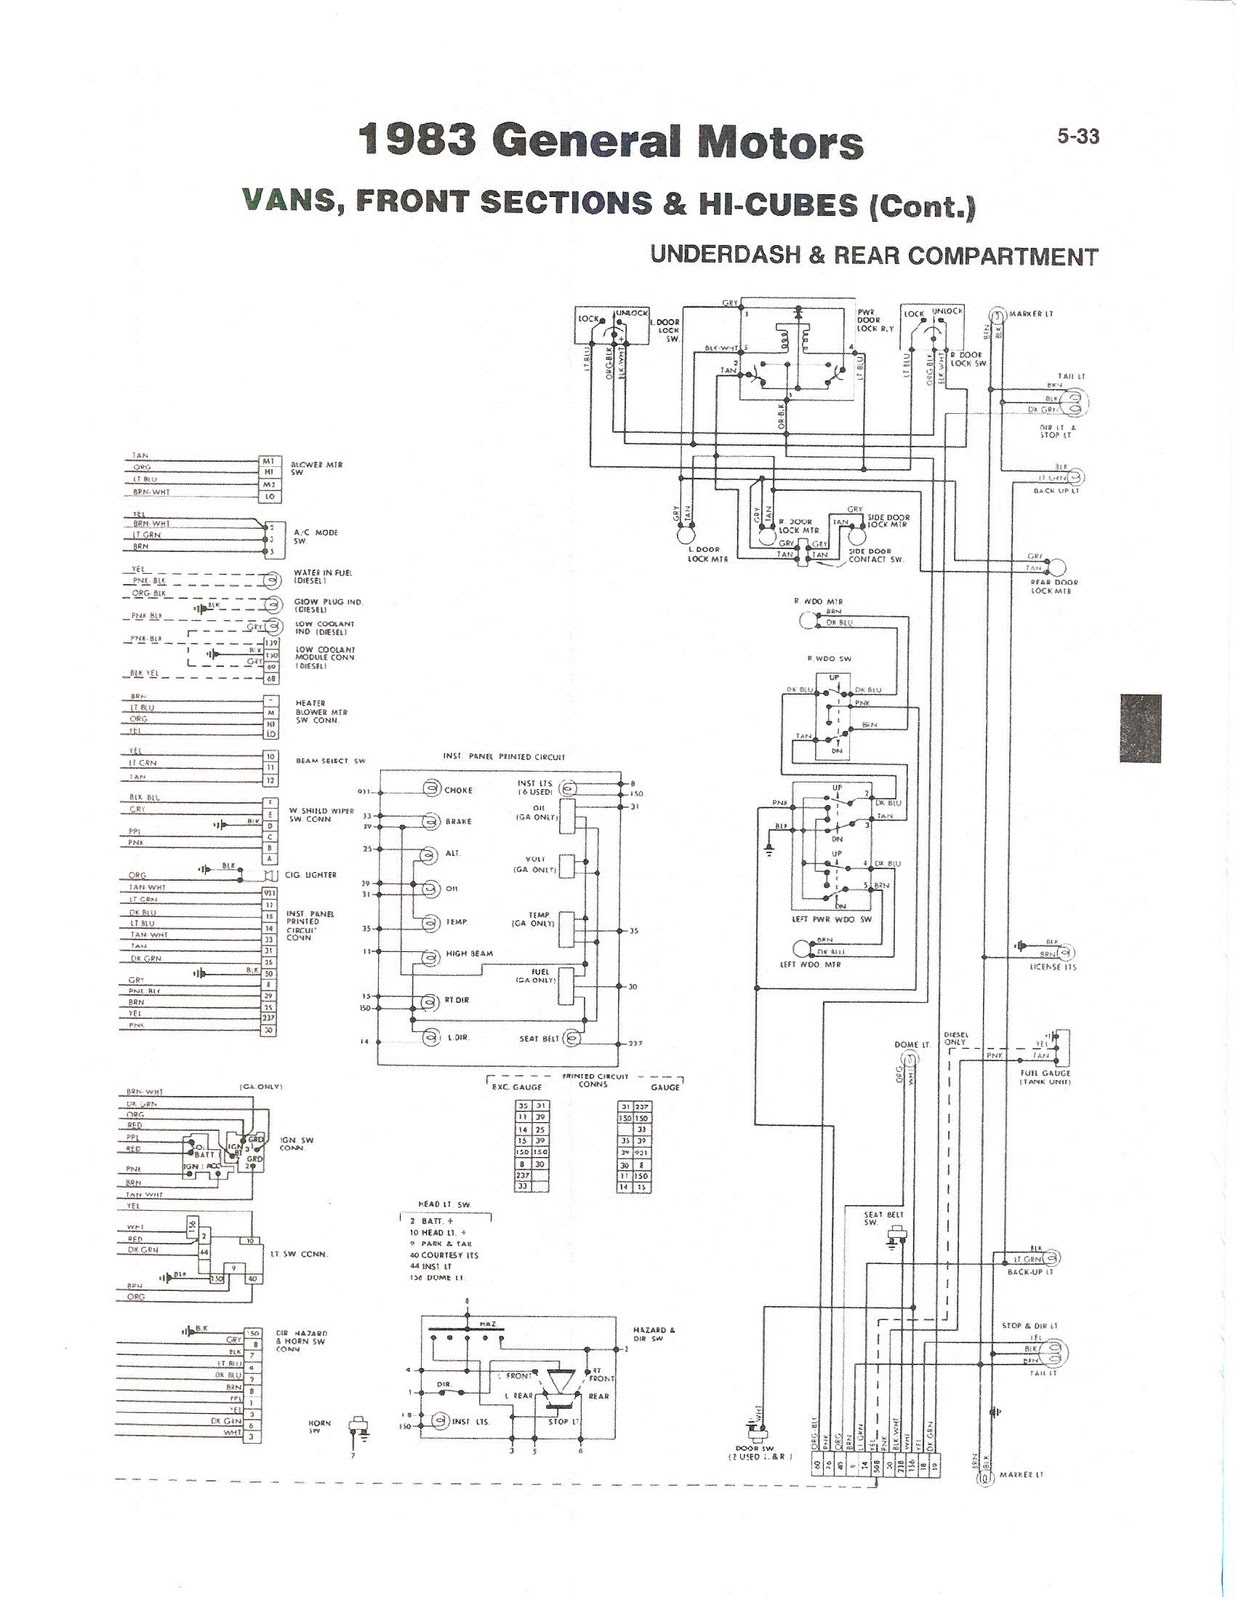 83+GM+Van+front+section+%26+Hi Cubes++underdash+%26+rear+compartment fleetwood rv wiring diagram rv generator wiring diagram \u2022 wiring 1988 Southwind Motorhome at couponss.co